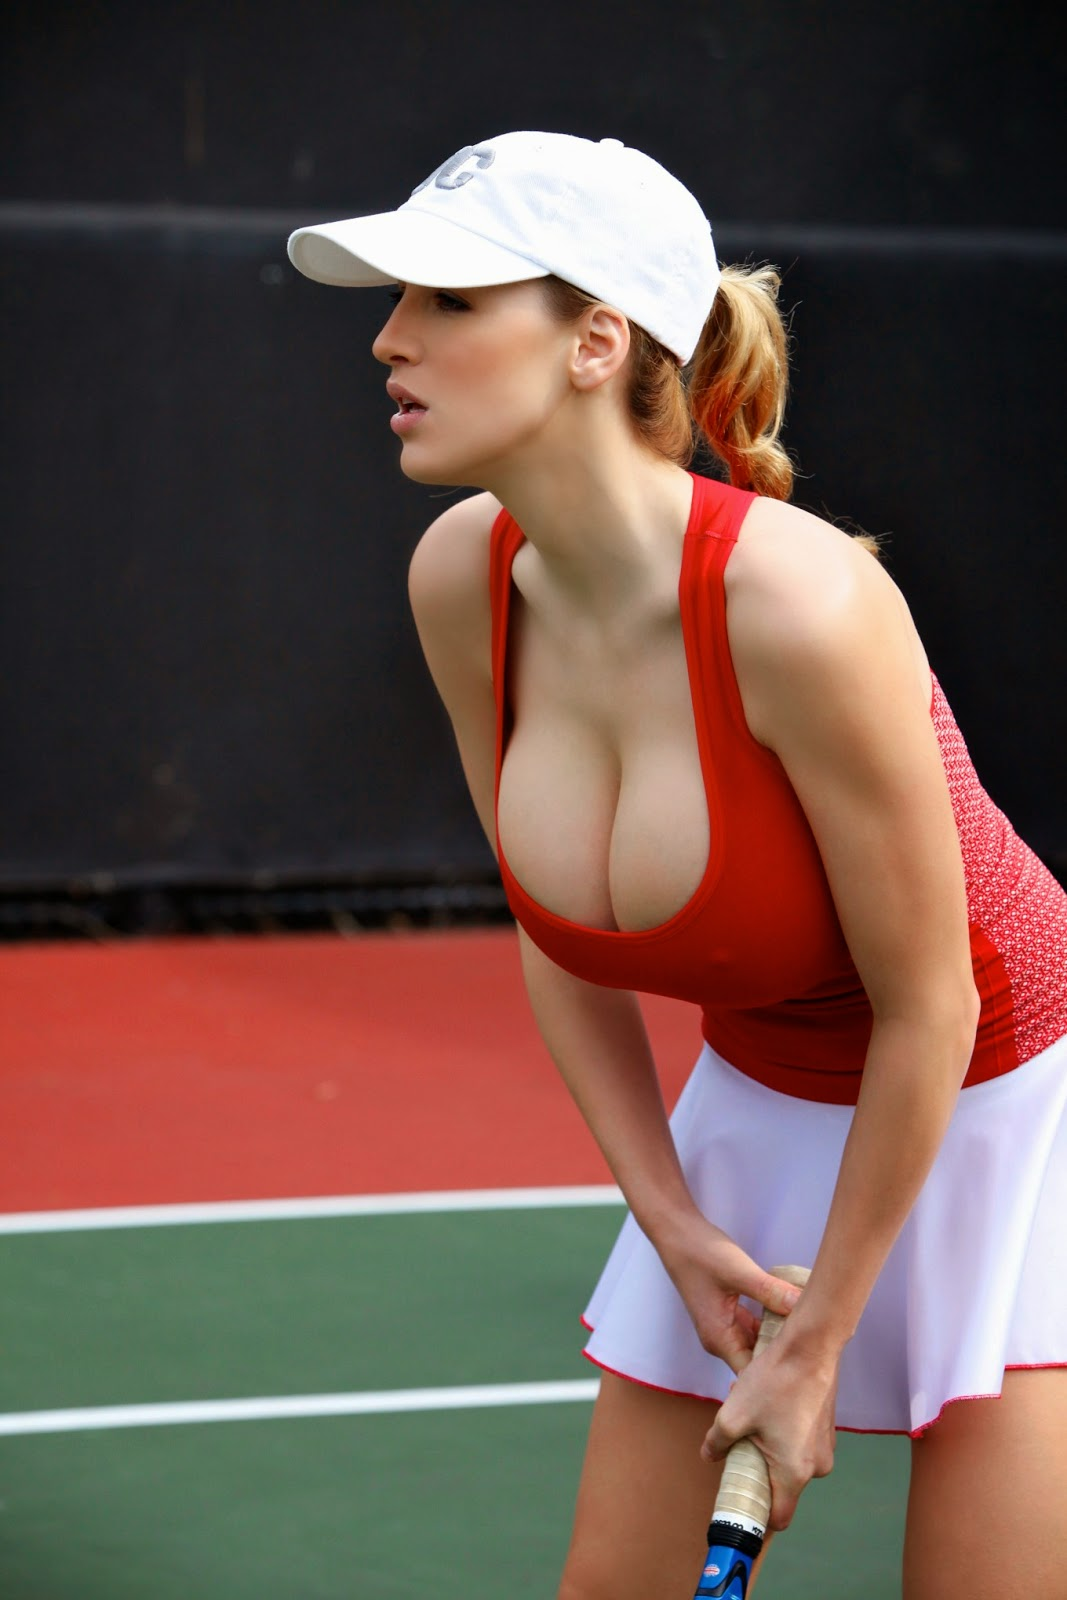 cloth tennis player nude girl big boobs